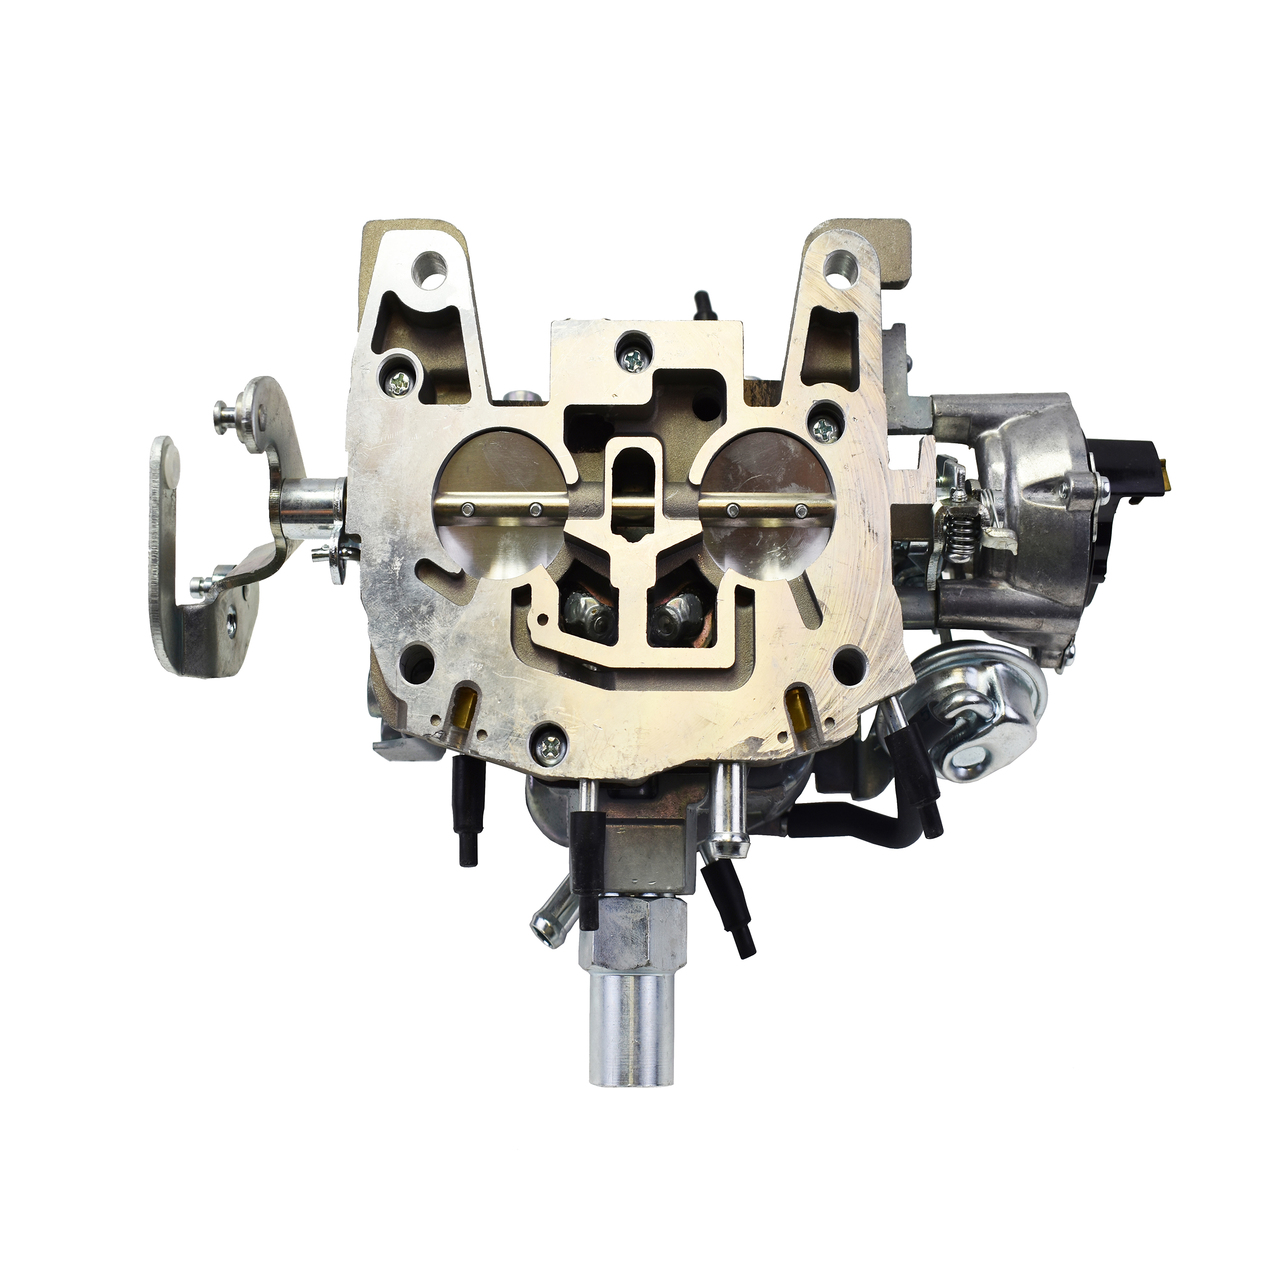 A-Team Performance 138 CARBURETOR TYPE ROCHESTER M2MC V6 BUICK GMC GM CAR TRUCKS 265 231 252